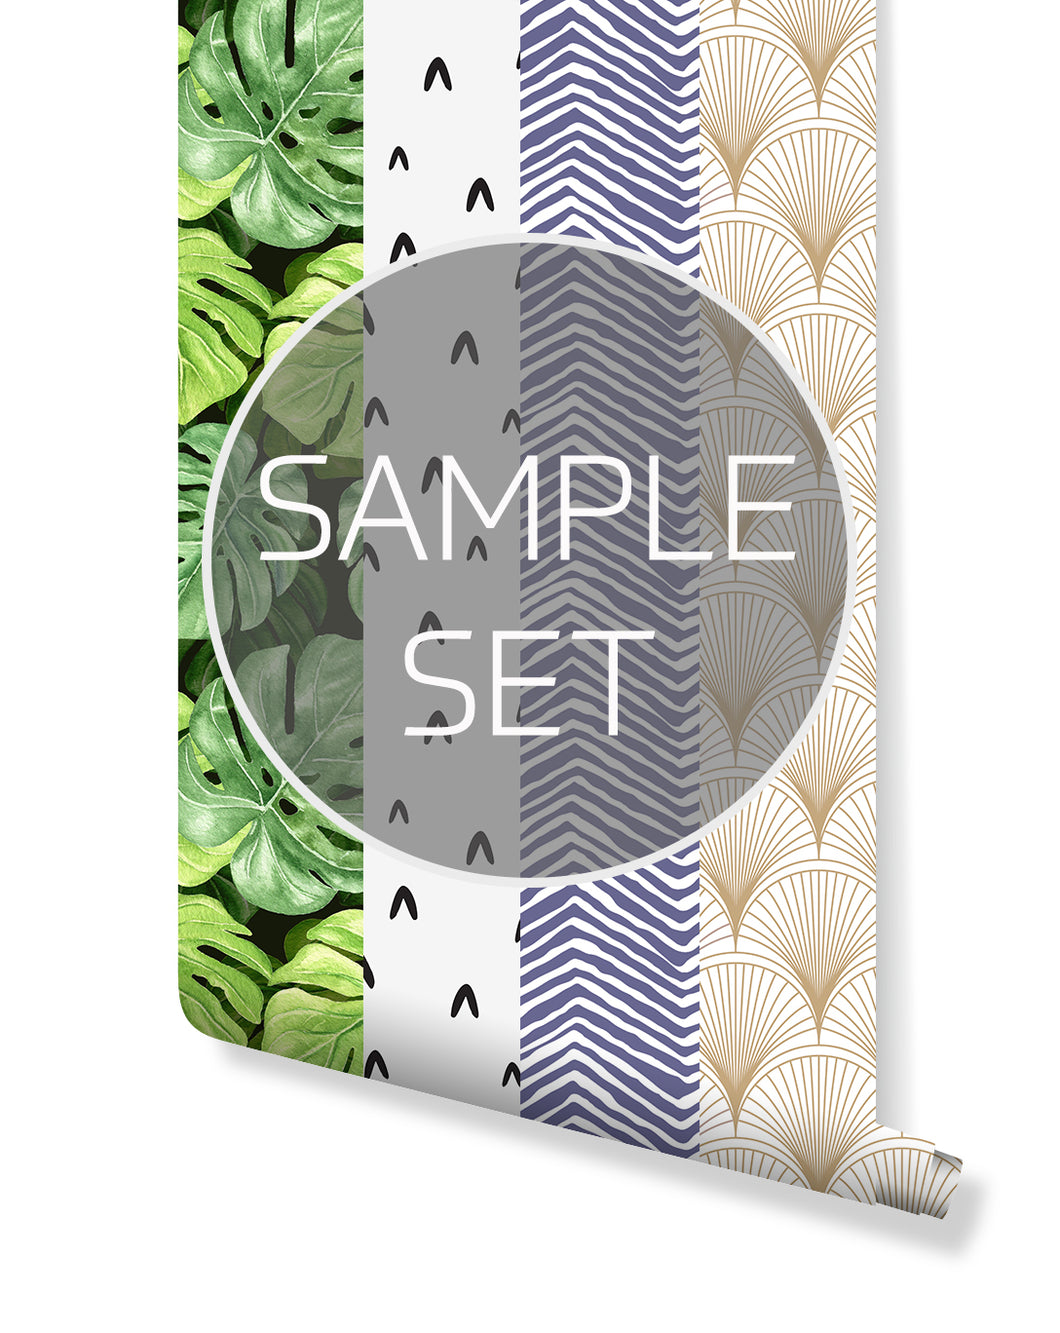 Self adhesive removable wallpaper sample set by costacover